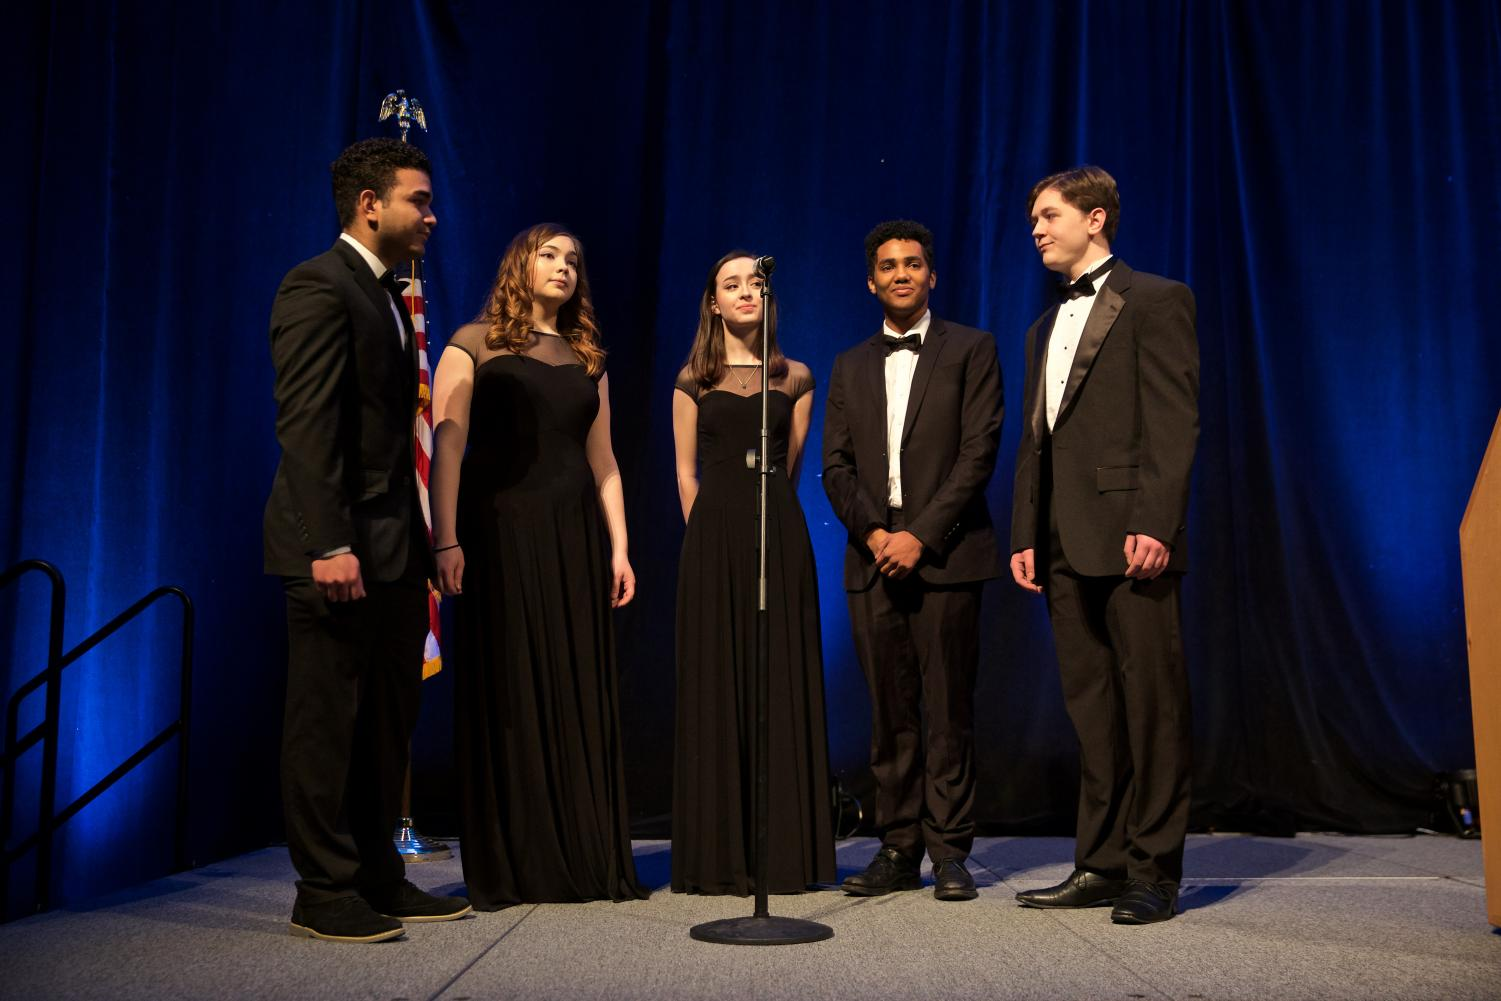 Gino Colon, Chaela Oscar, Natalie Sato, Trenton Ruffin, and Lukas Hurley sing at the GOSH Conference.